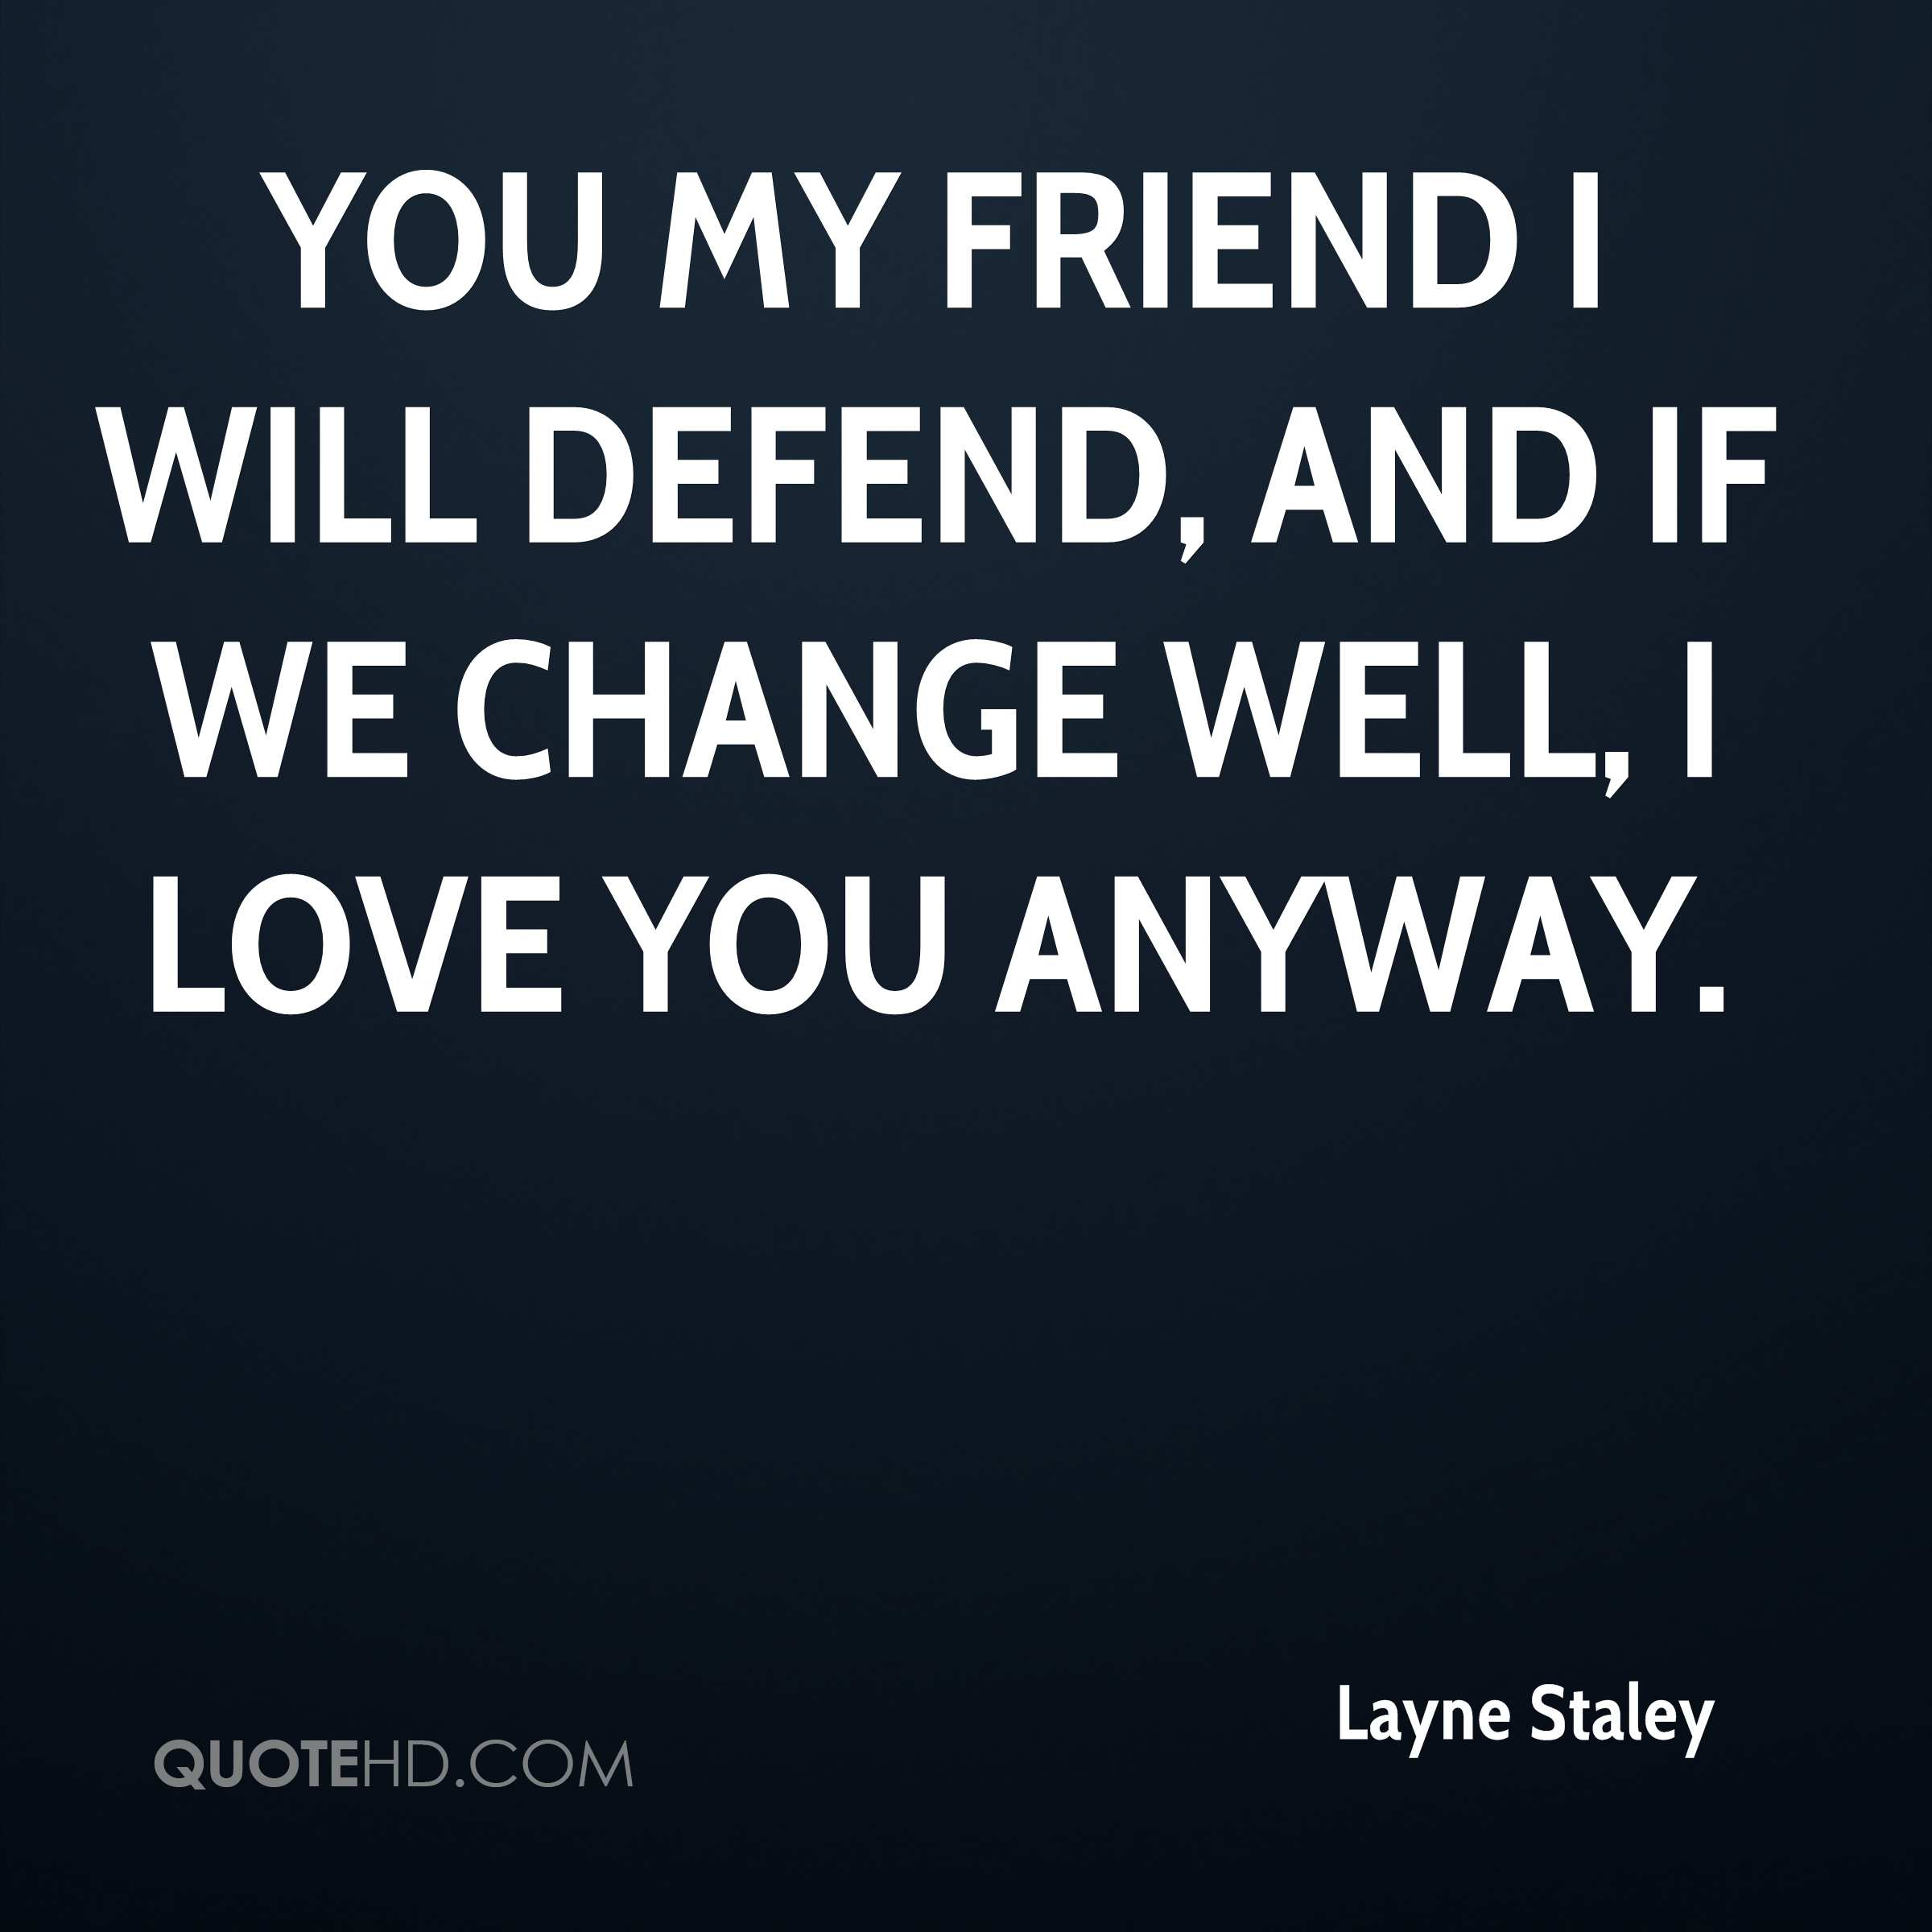 Life Changing Quotes About Love Layne Staley Quotes  Quotehd